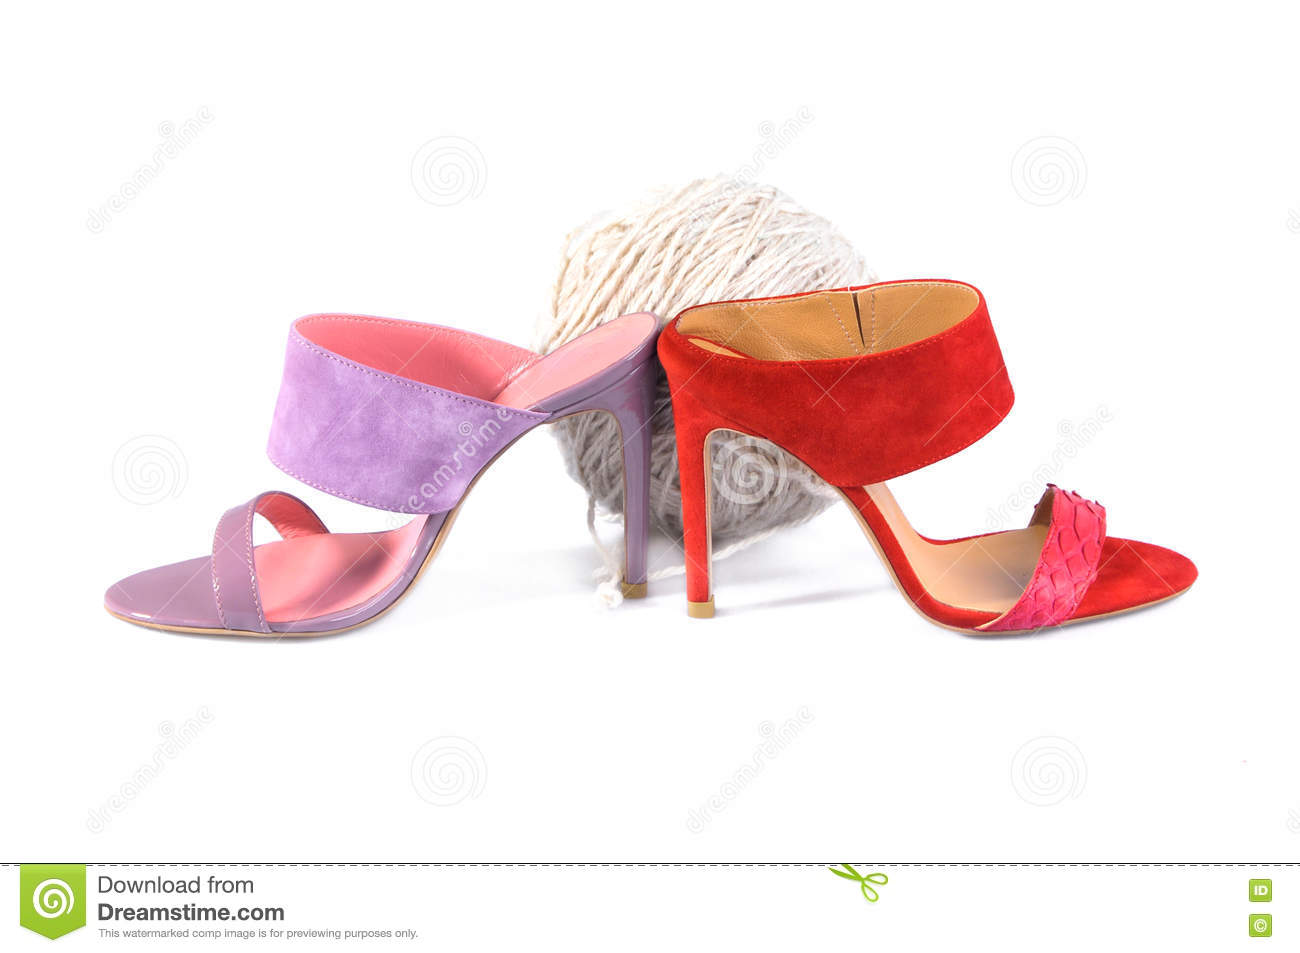 52922909b0acc Leather Handmade Shoes - Pink And Red Heels Sandals Stock Photo ...